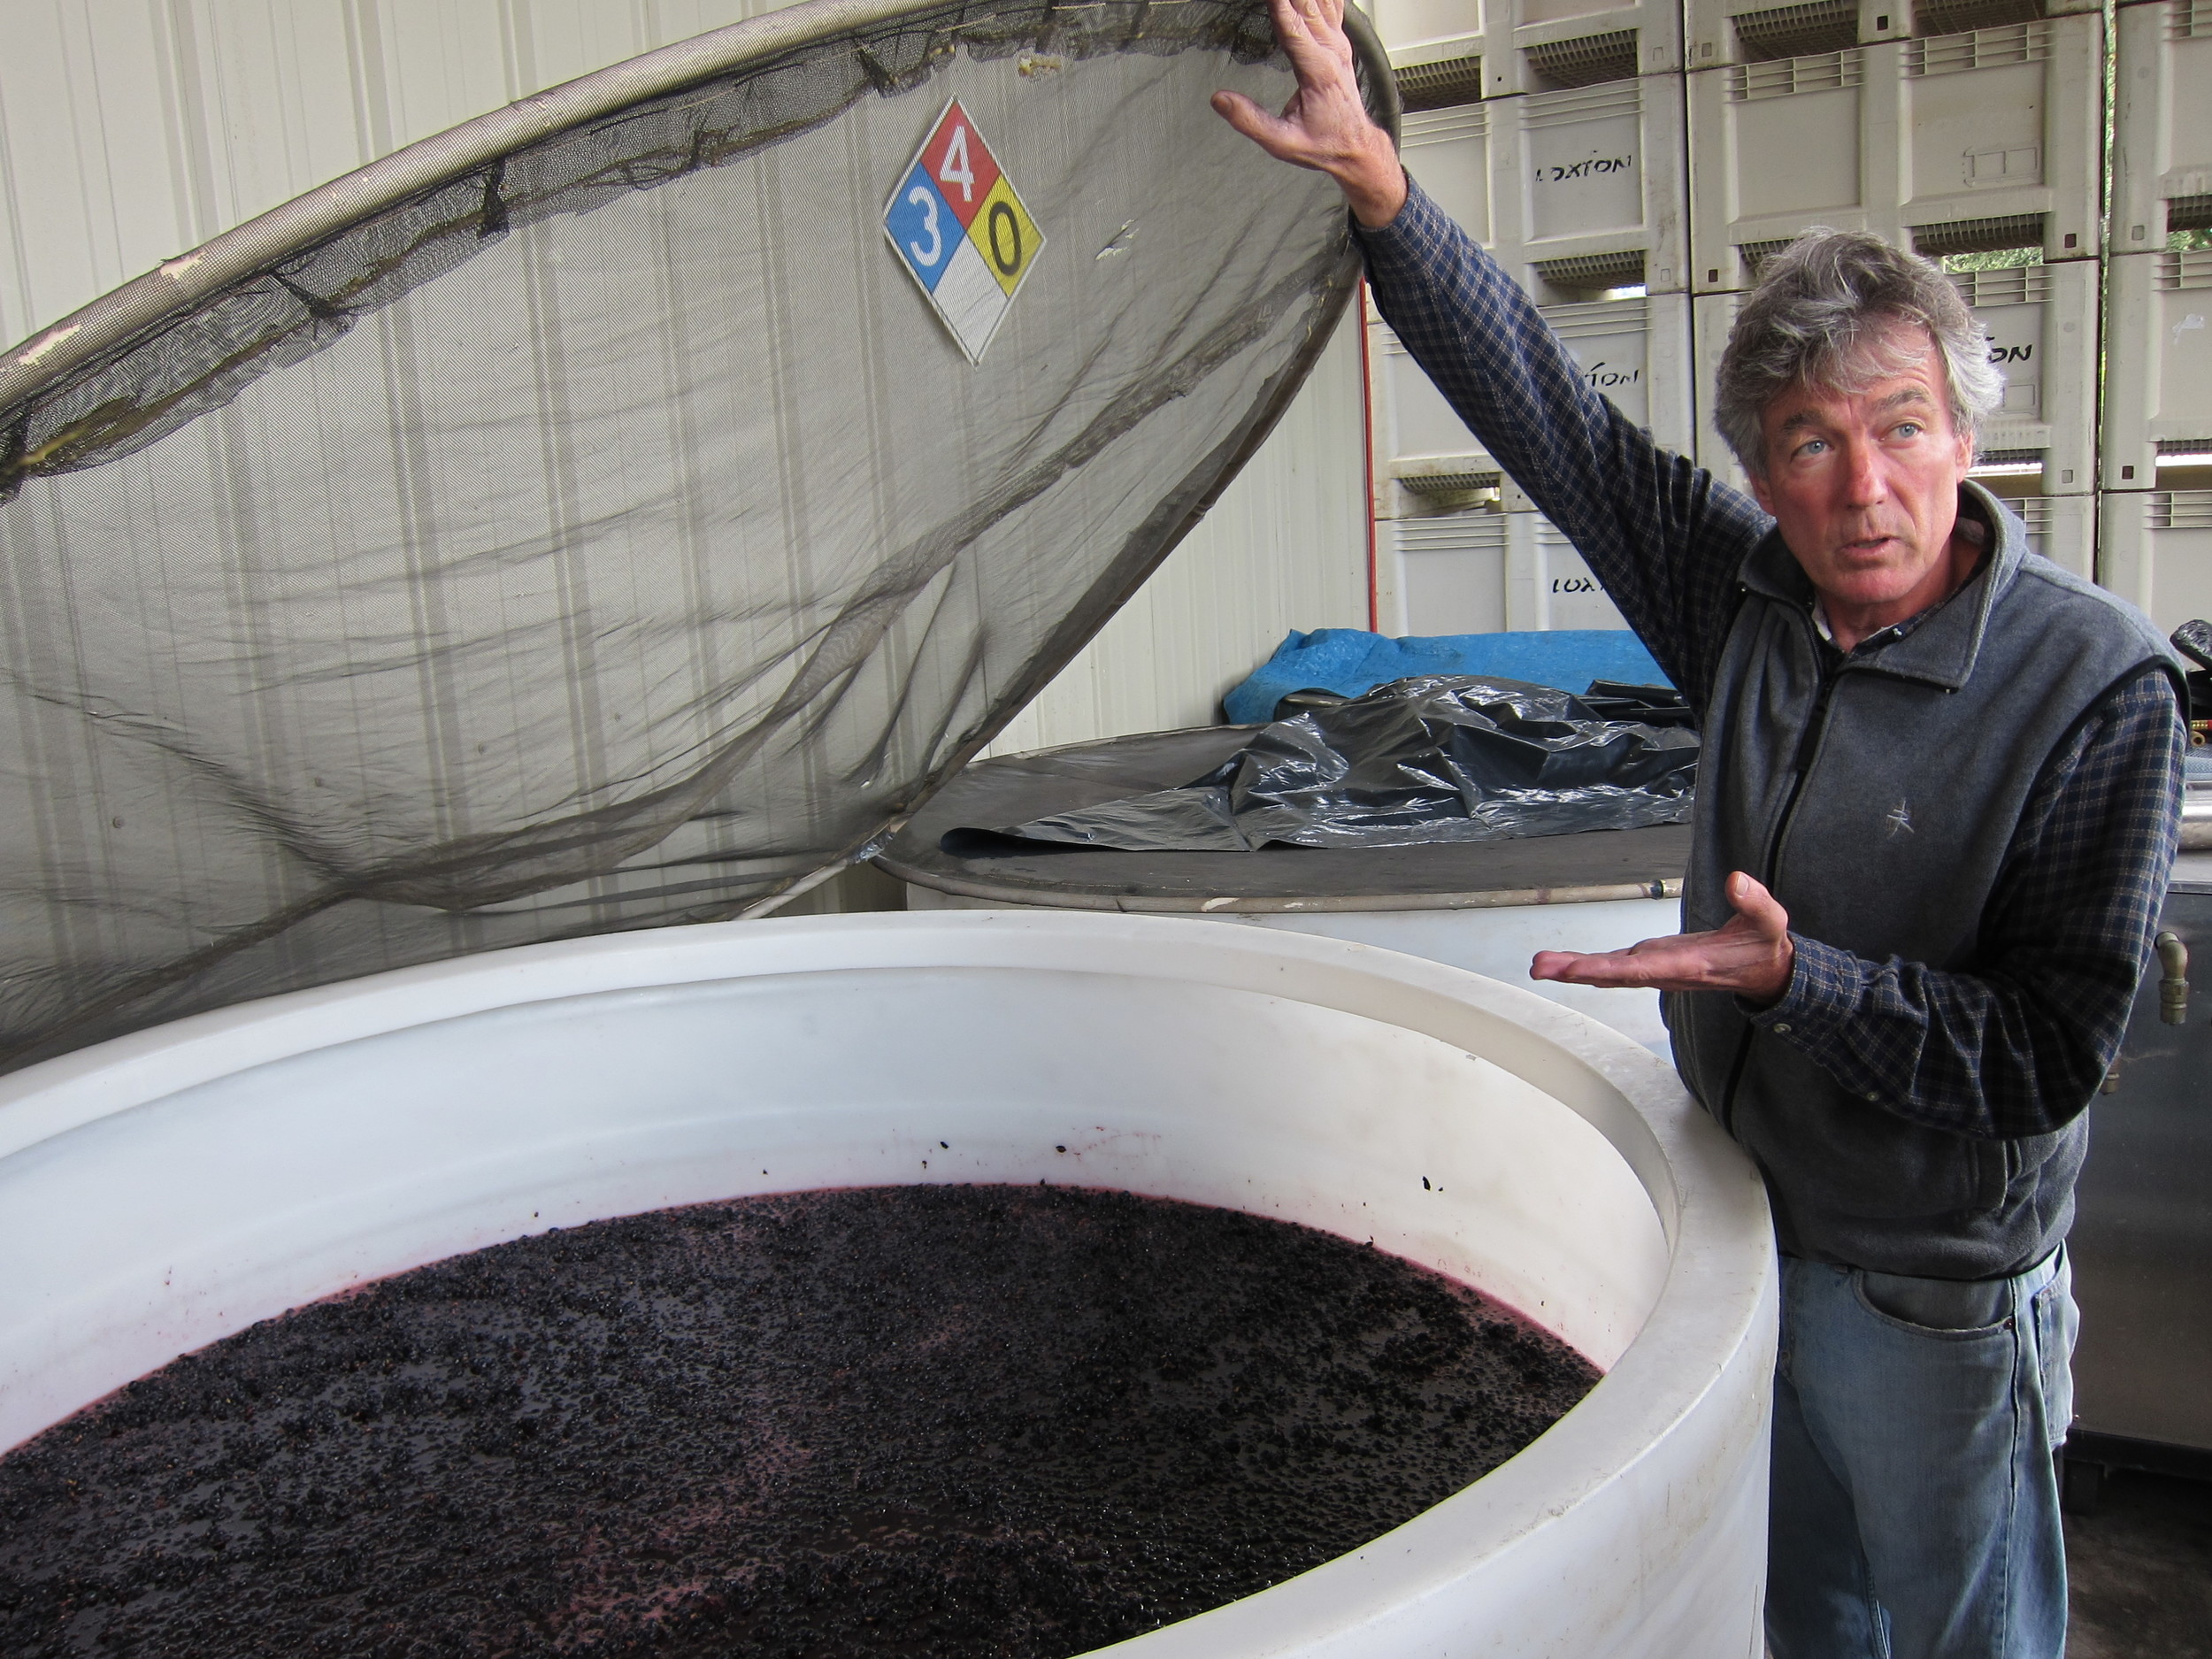 Chris Loxton explains the wine production process in Sonoma